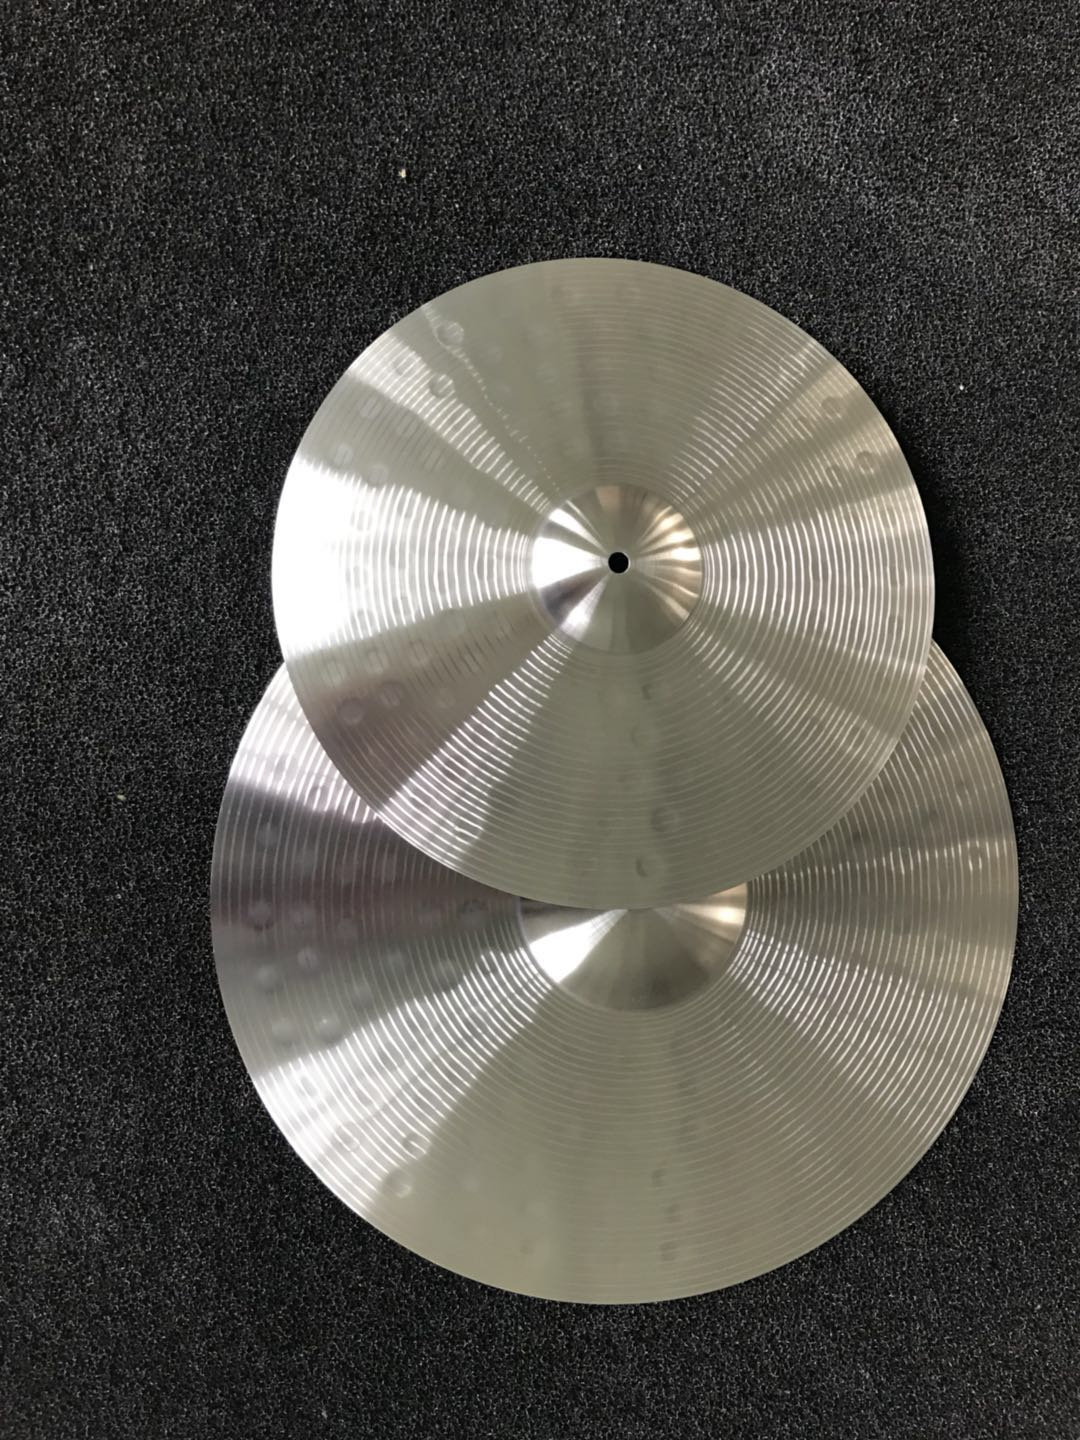 Stainless Steel Alloy Cymbals